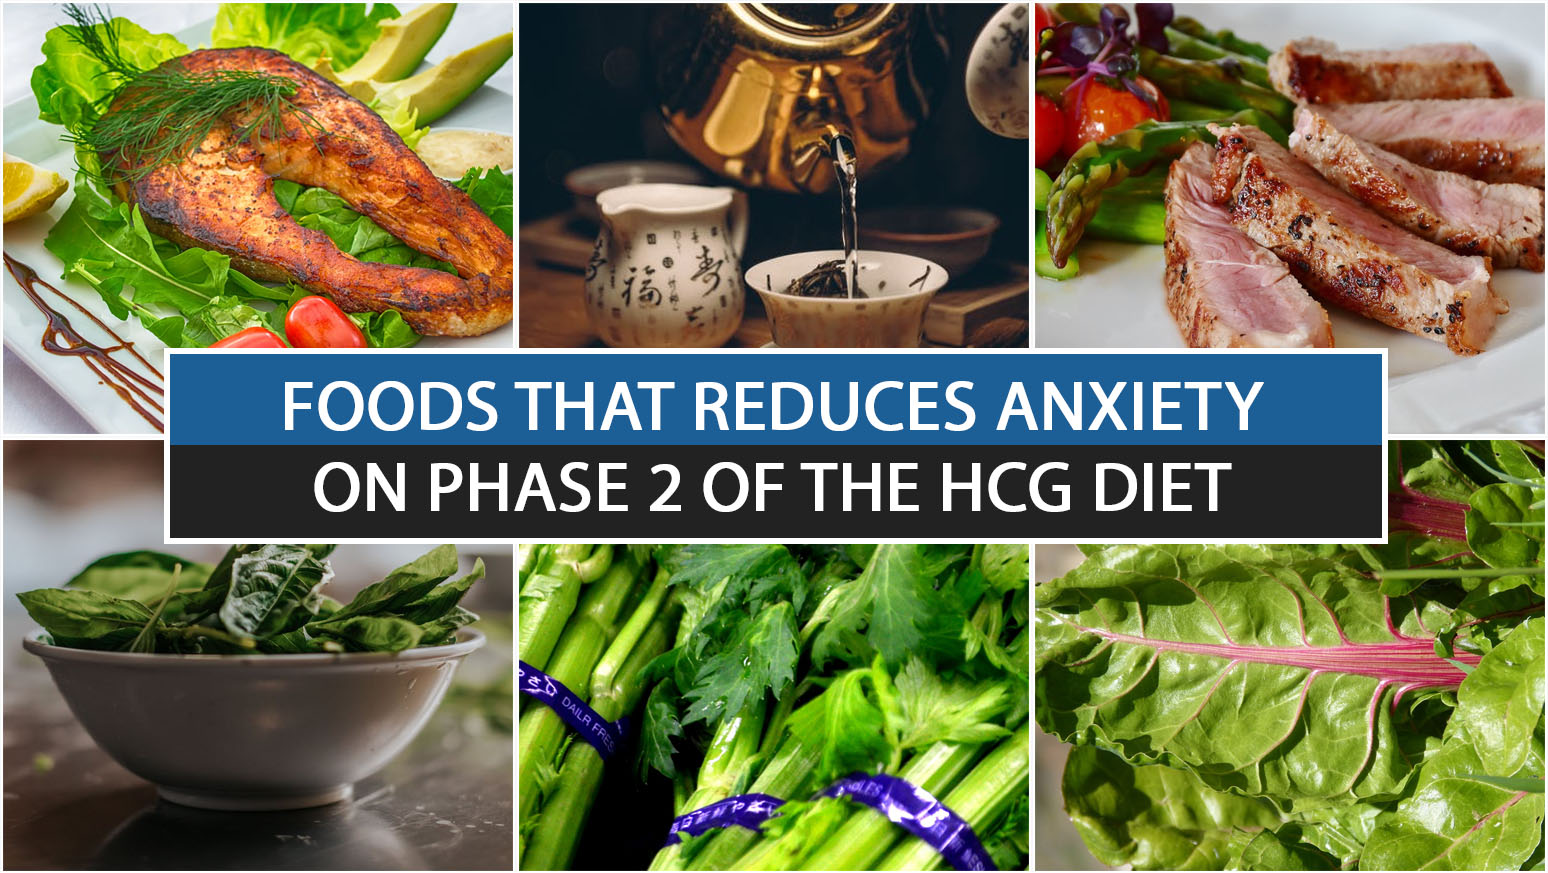 FOODS THAT REDUCES ANXIETY ON PHASE 2 OF THE HCG DIET